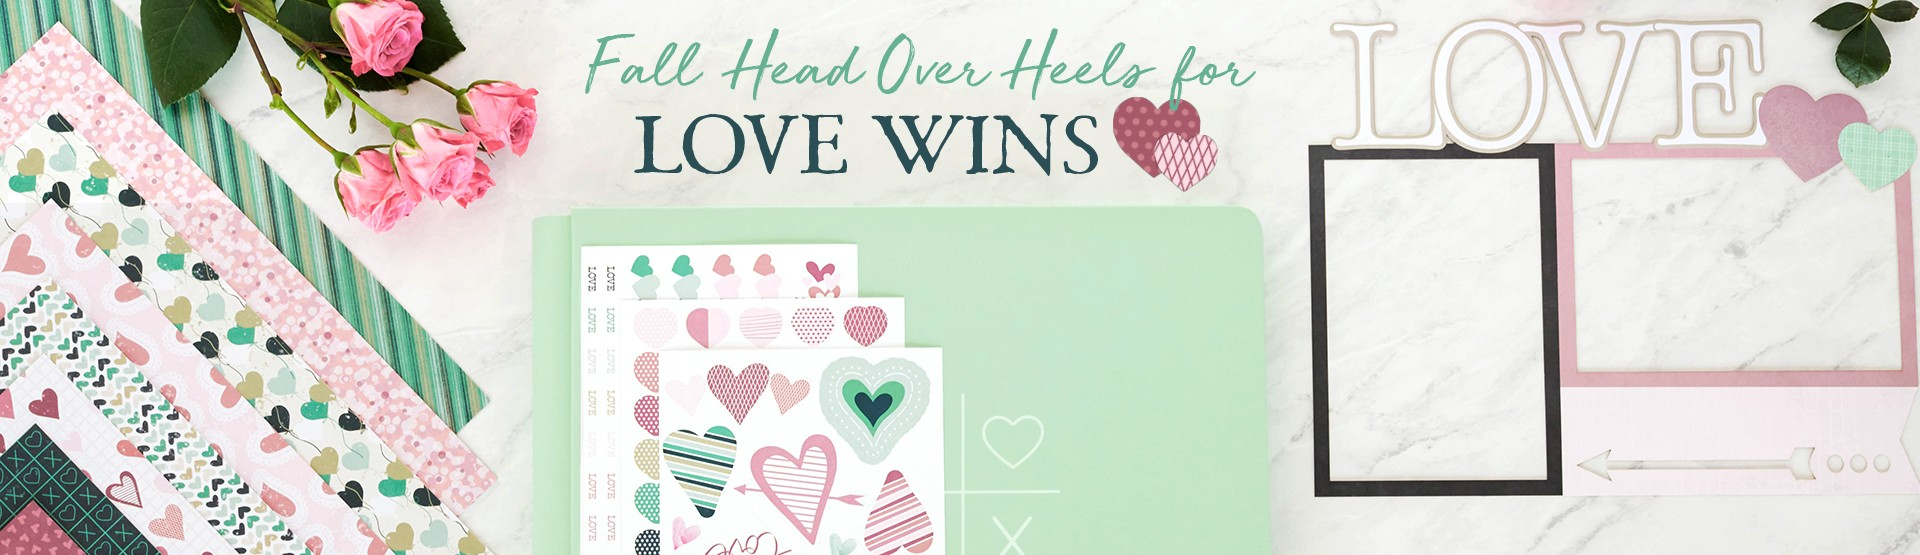 Valentine's Day & Love Scrapbooking Supplies: Love Wins